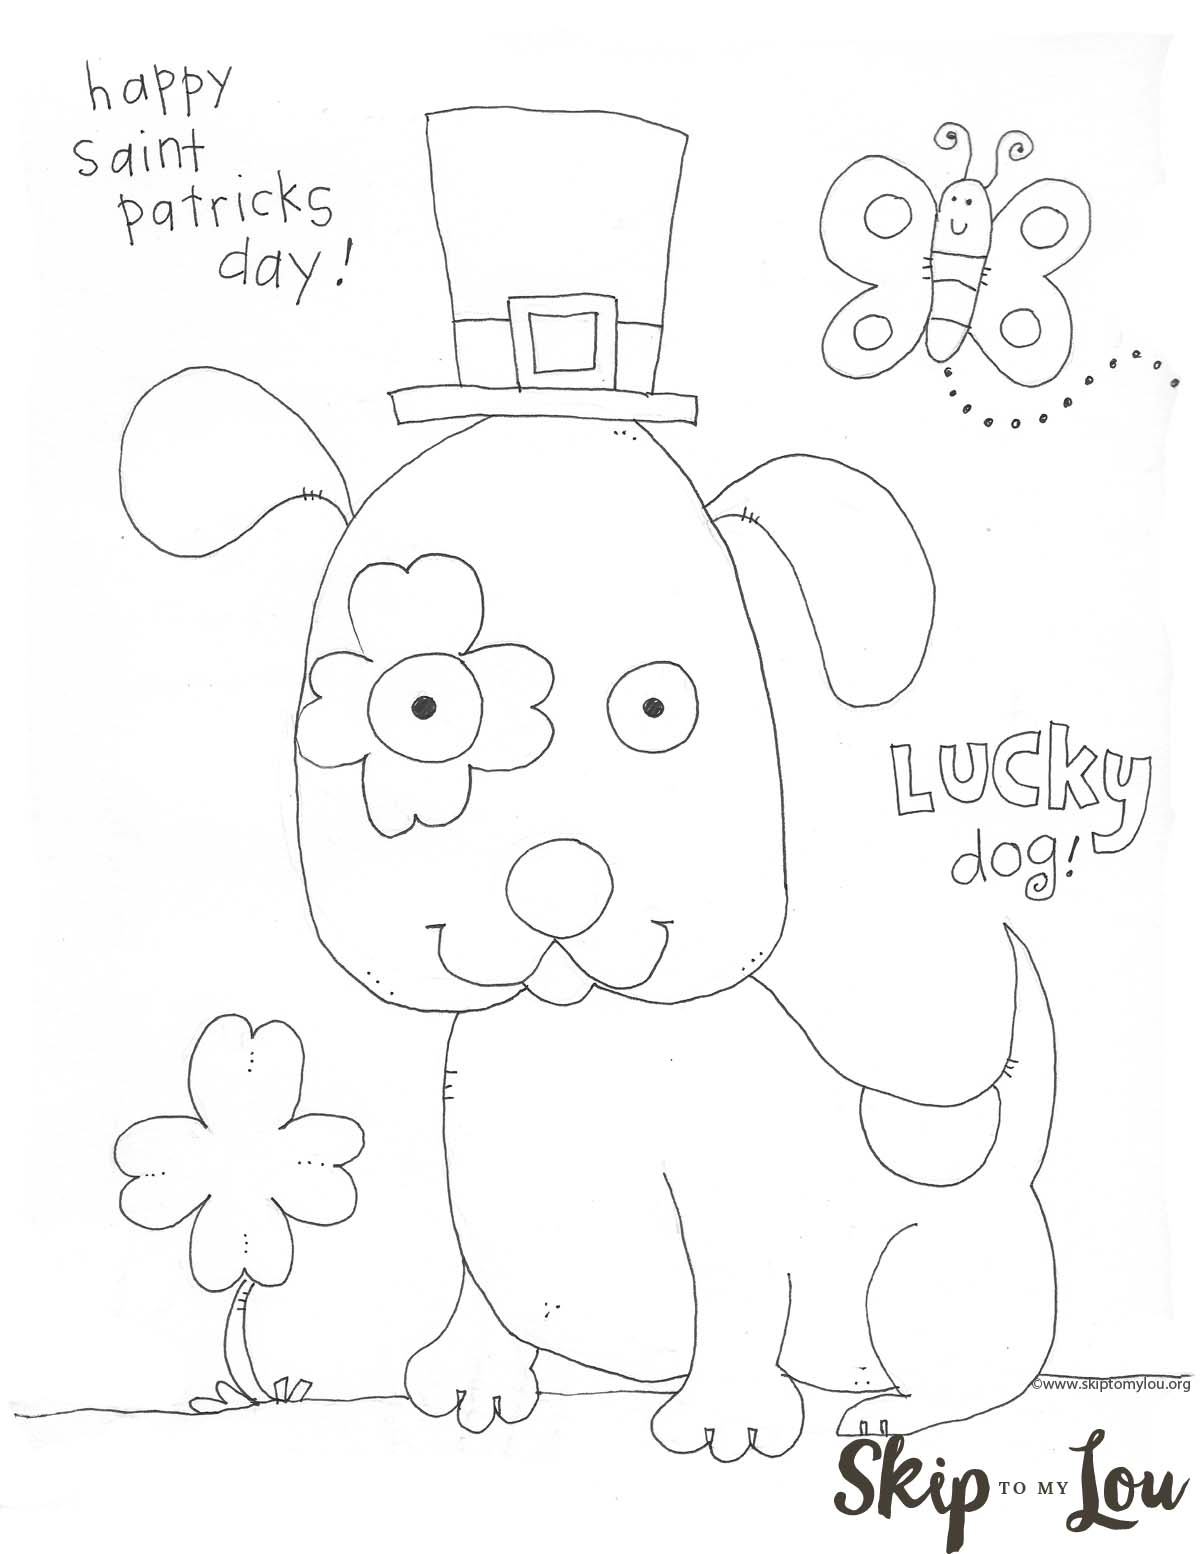 Satisfactory printable st patrick's day coloring pages ...